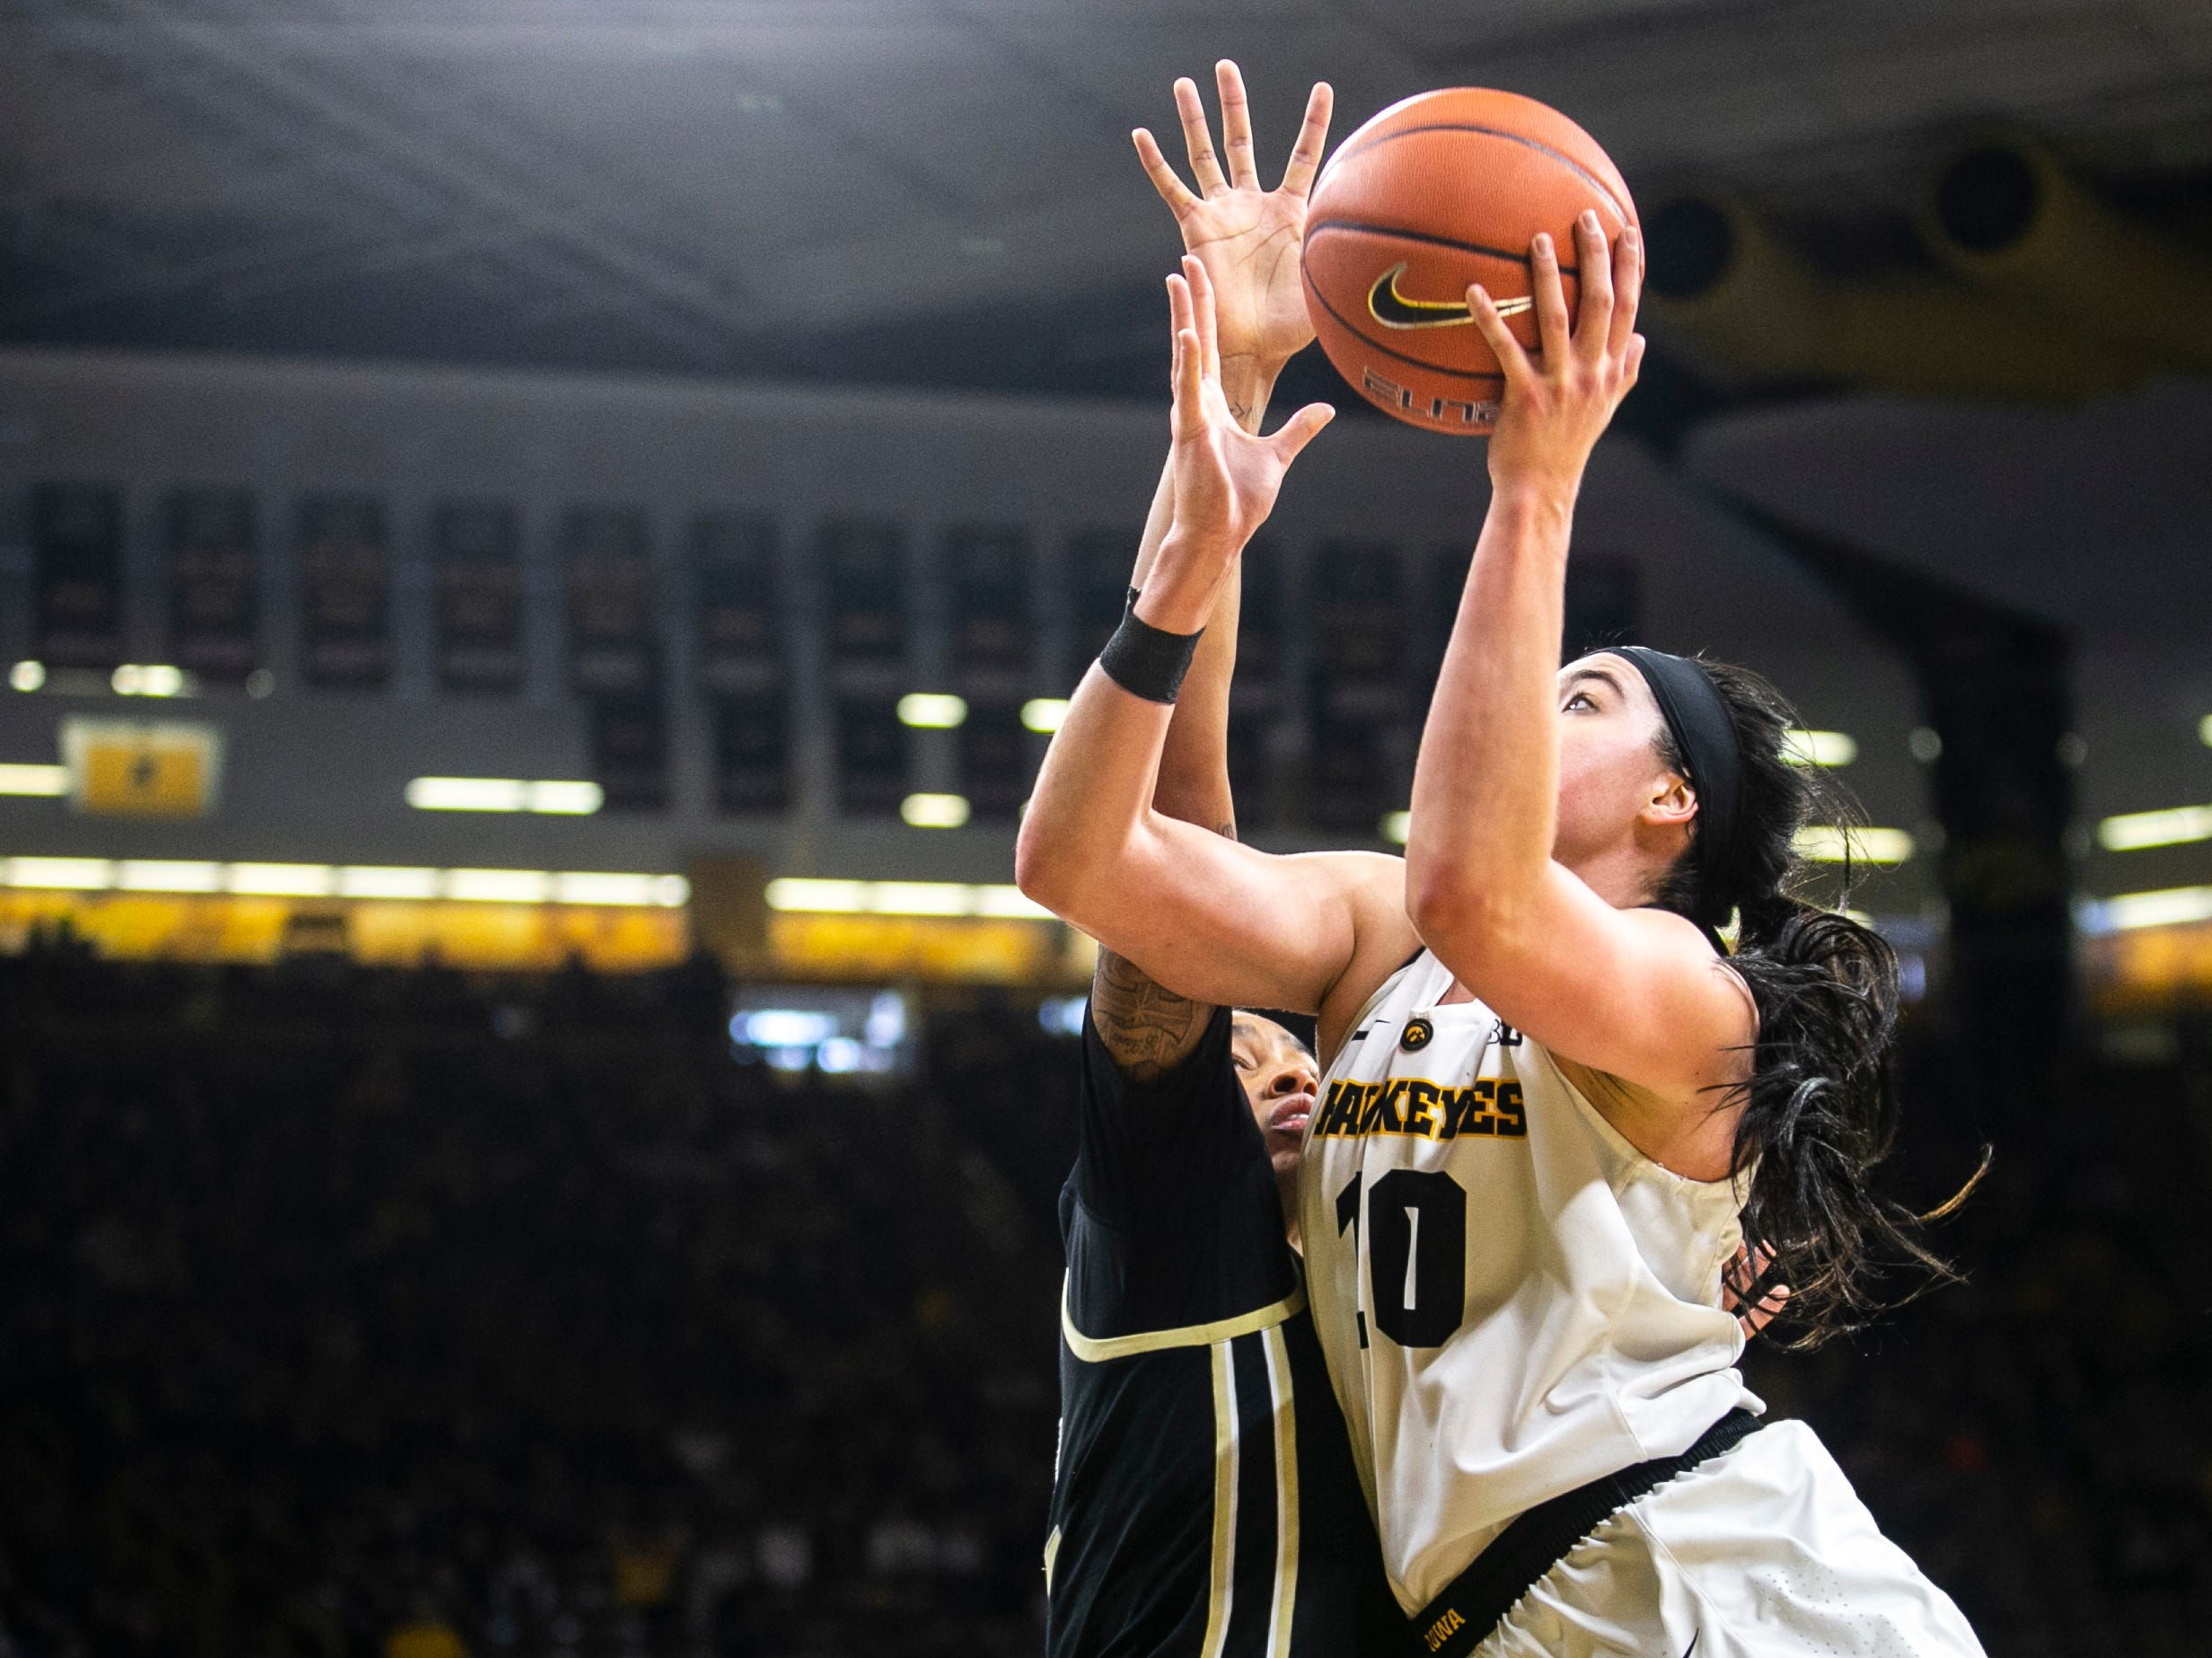 Iowa center Megan Gustafson (10) drives to the hoop past Purdue forward Ae'Rianna Harris during a NCAA Big Ten Conference women's basketball game on Sunday, Jan. 27, 2019, at Carver-Hawkeye Arena in Iowa City, Iowa.